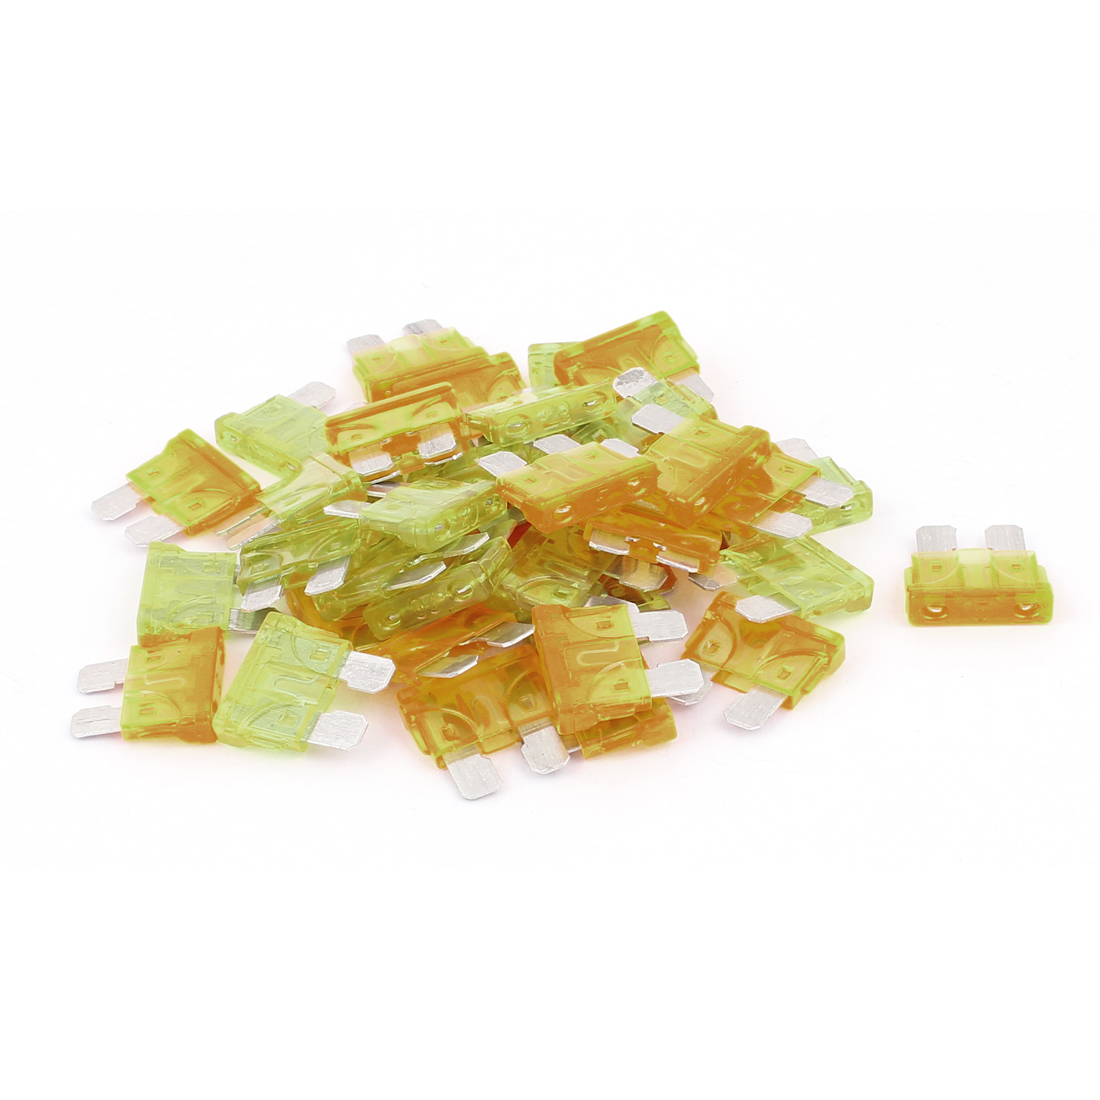 40pcs Auto Motorcycle Car Truck Caravan SUV Boat ATC ATO Mini Blade Fuses 20A 5A Yellow Orange